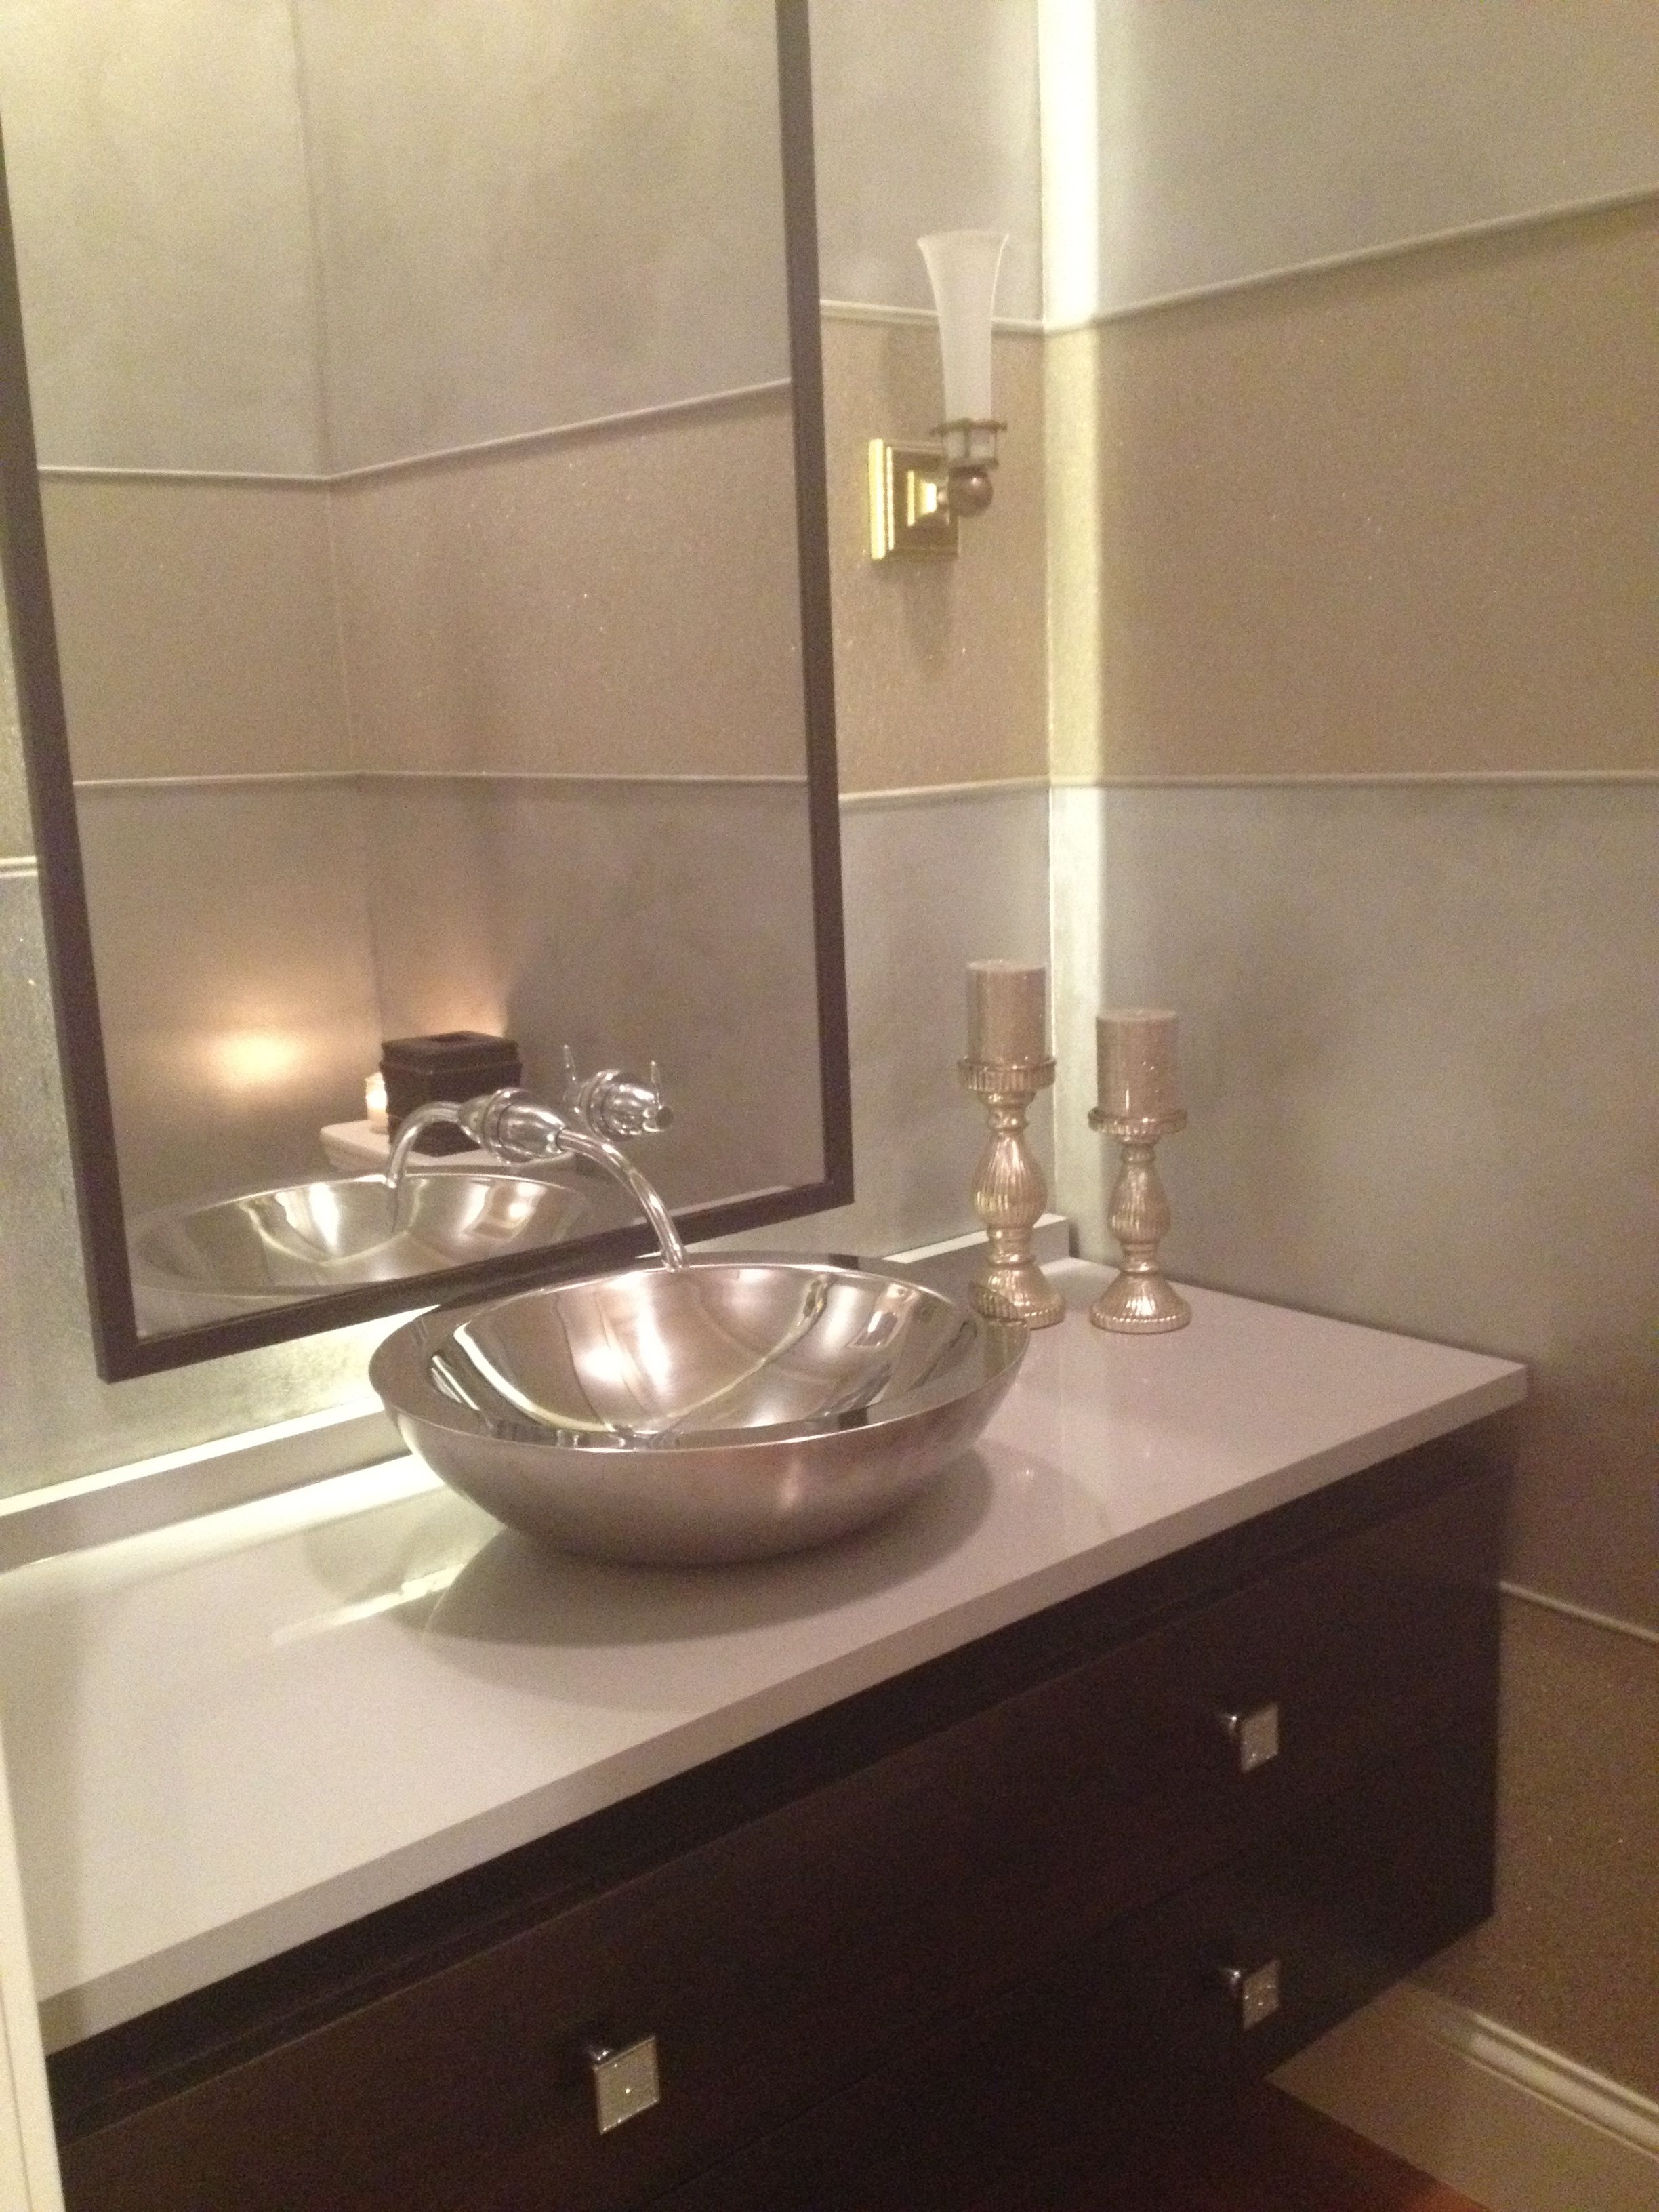 faucets glass sinks bathroom with x and waterfall faucet kraususa sink vessel combination